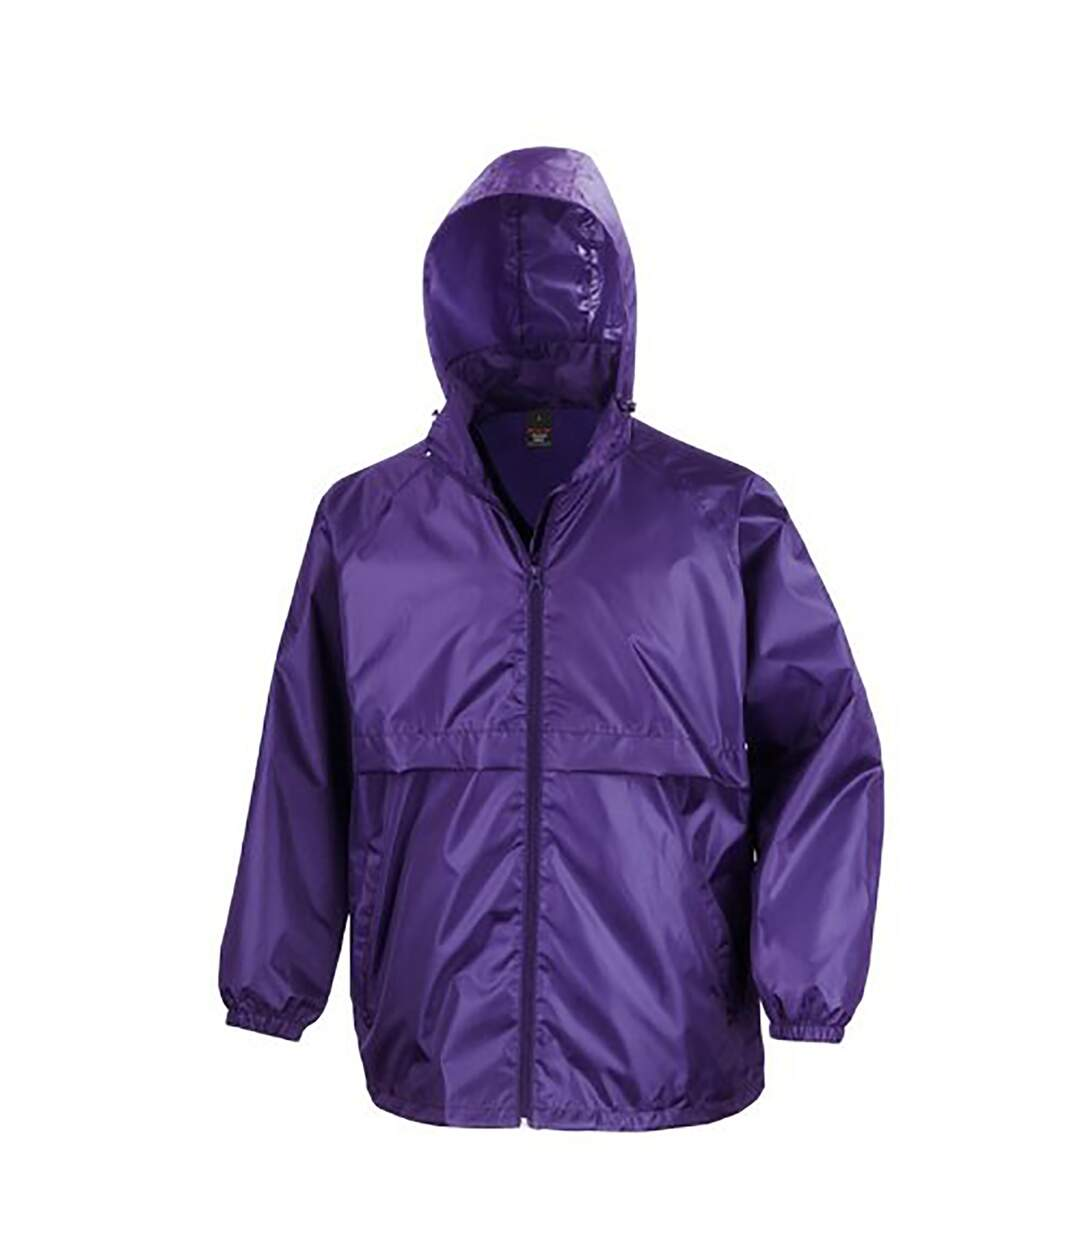 Result Mens Core Adult Windcheater Water Repellent Windproof Jacket (Royal) - UTBC897